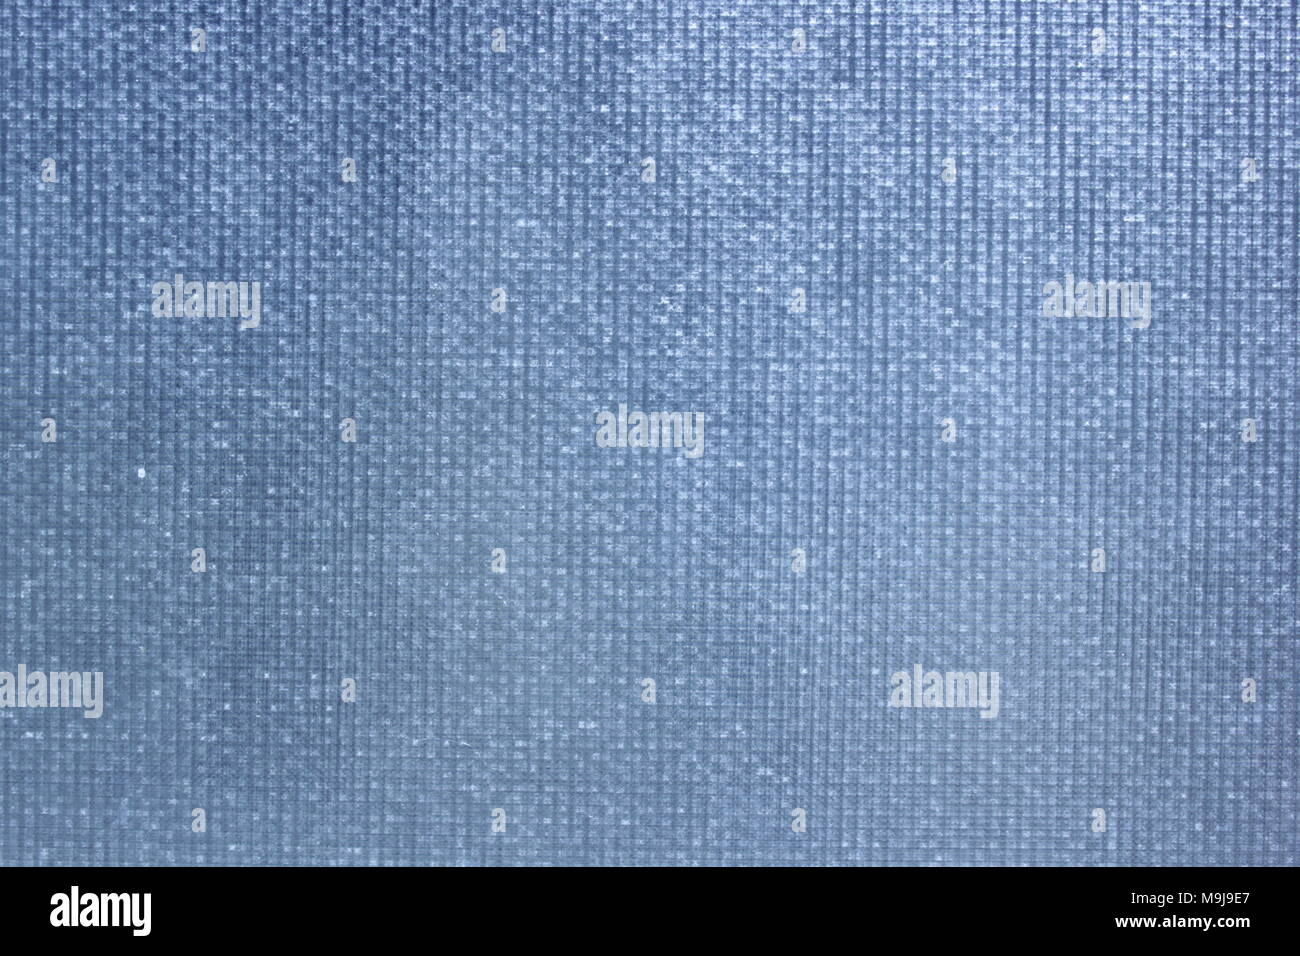 Close-up of vintage frosted meshed bathroom window from Grandma's house - Stock Image